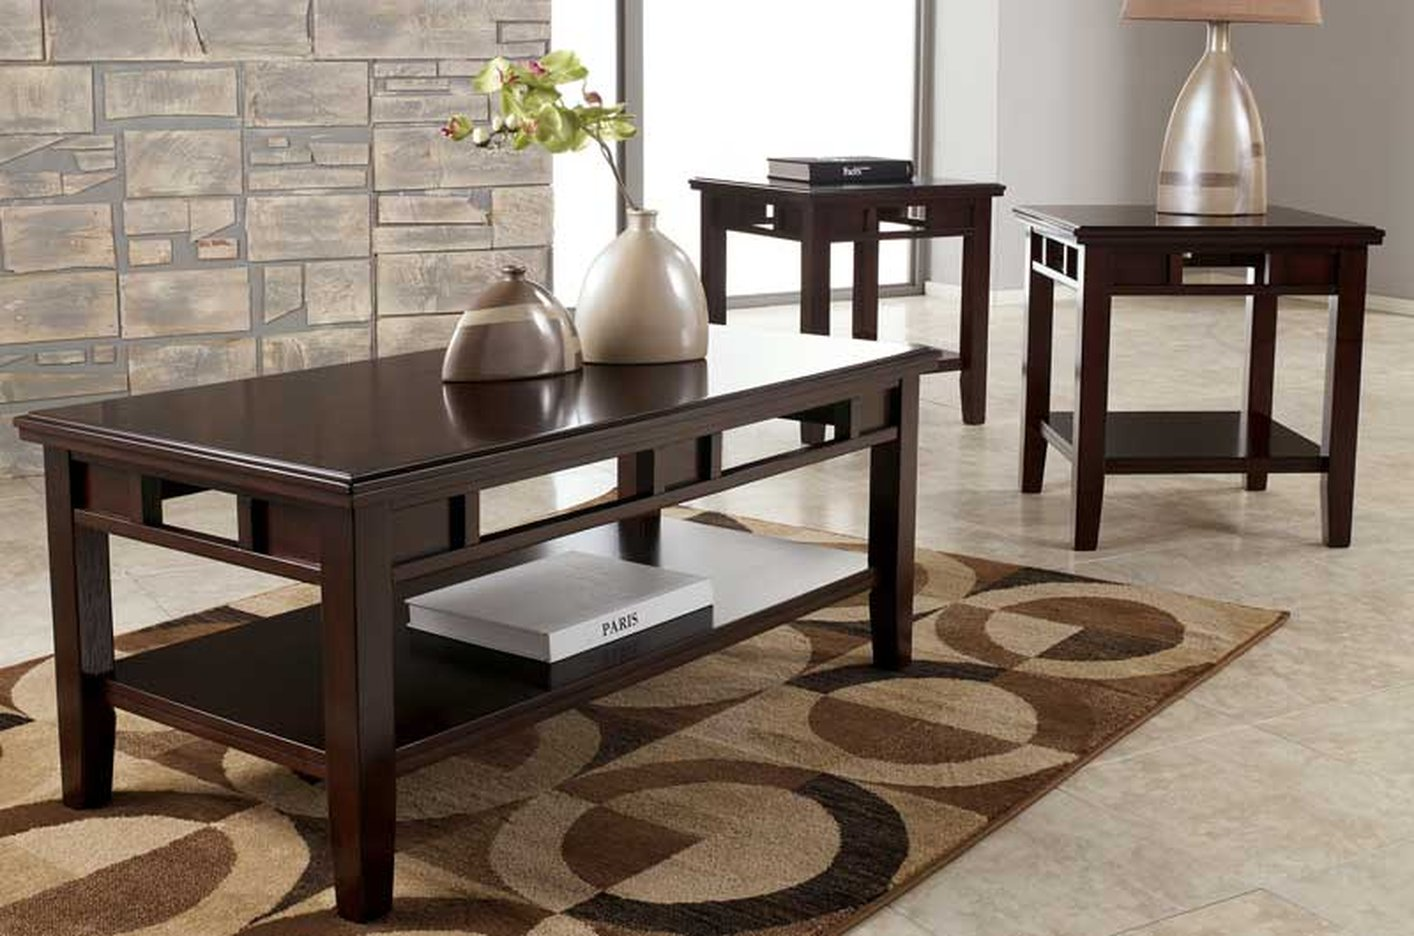 living room impressive big lots end tables design for furniture sets rustic table baton rouge huntsville erie futon tall kitchen coffee and mid century modern target burl wood